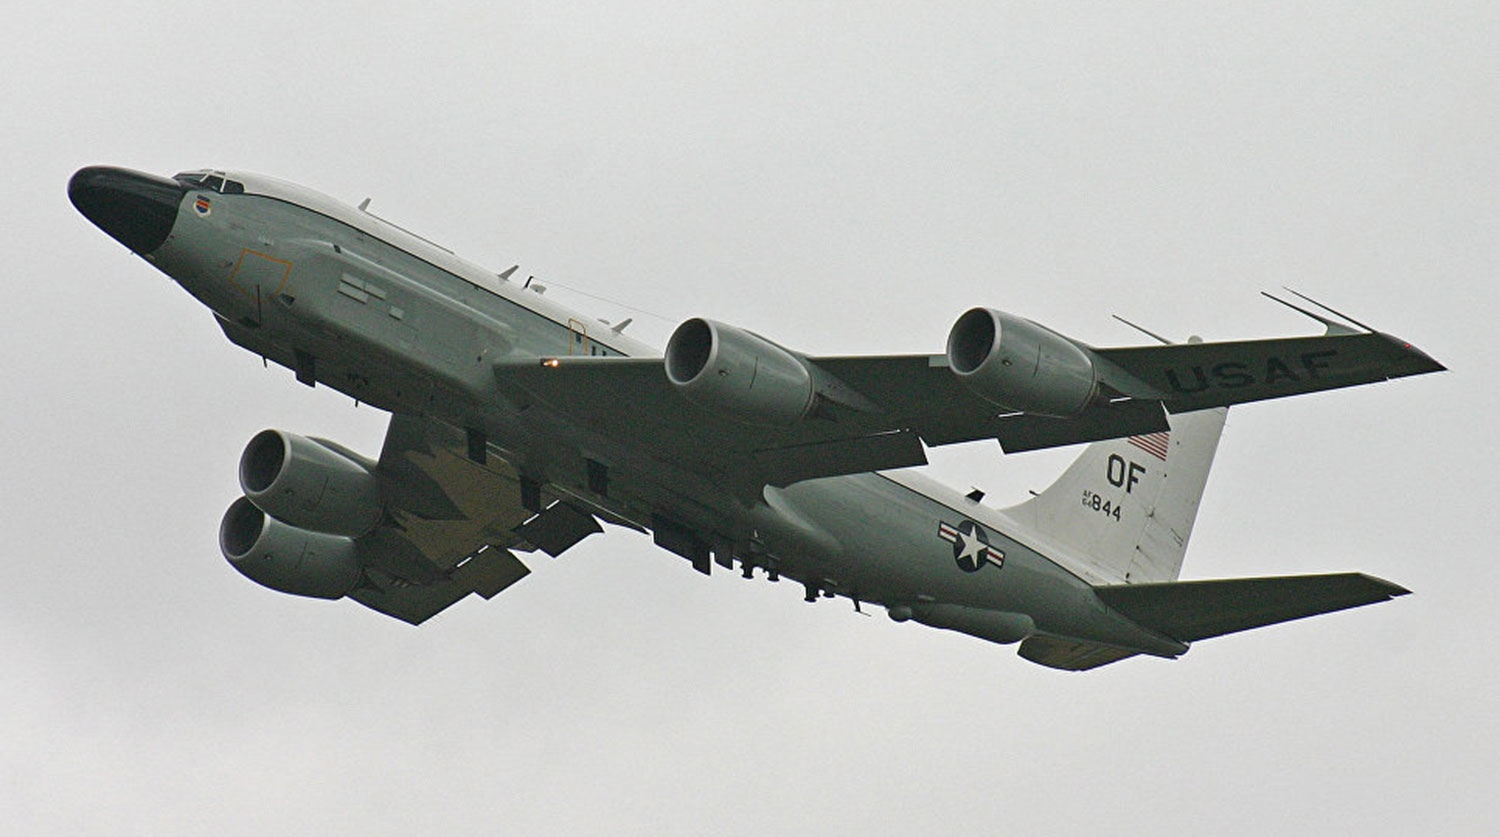 US Air Force aircraft conducted reconnaissance near Russian borders